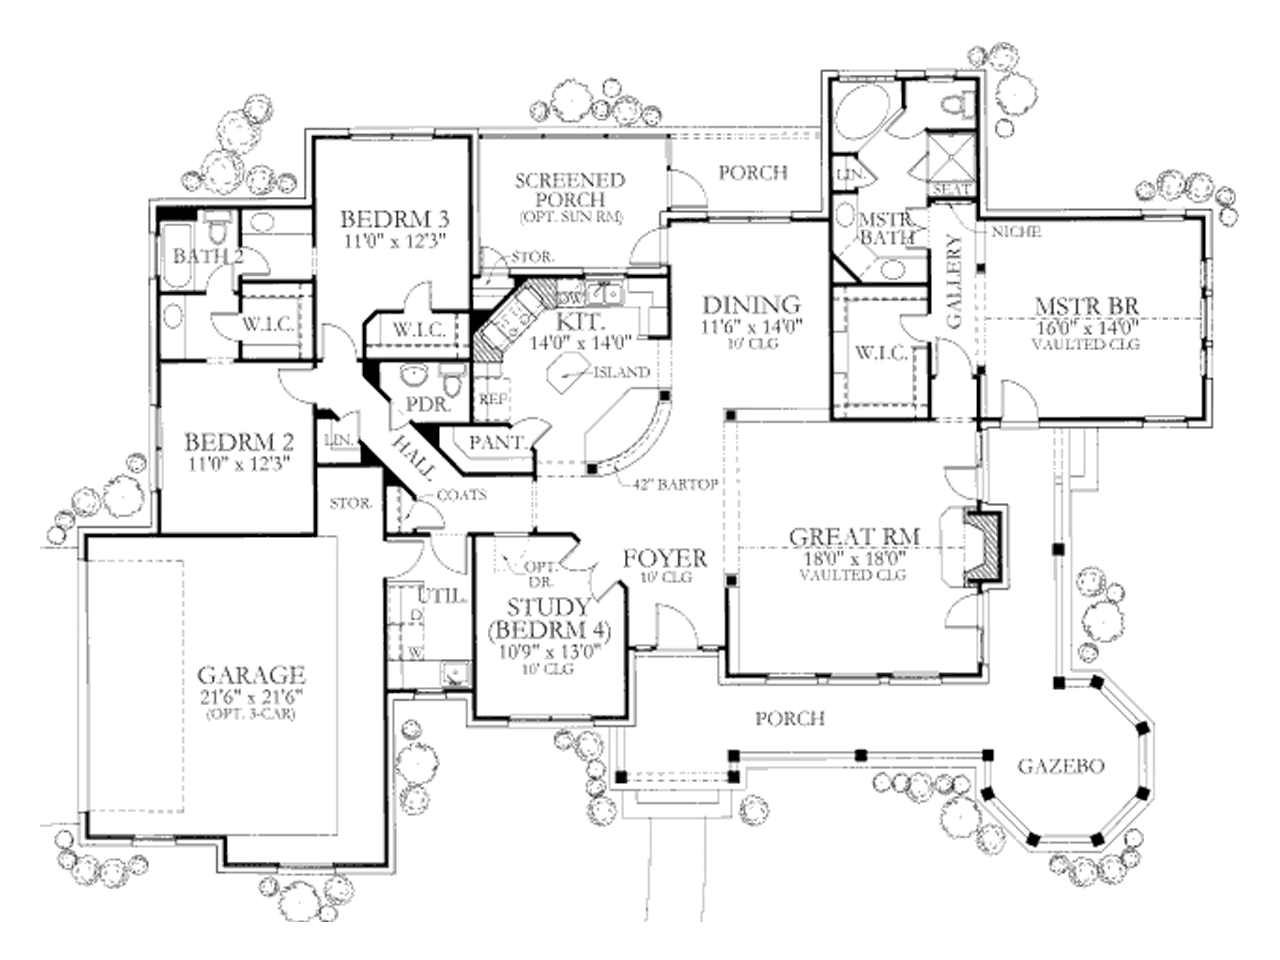 Country style house plan 4 beds baths 2184 sq ft for Texas ranch house plans with porches